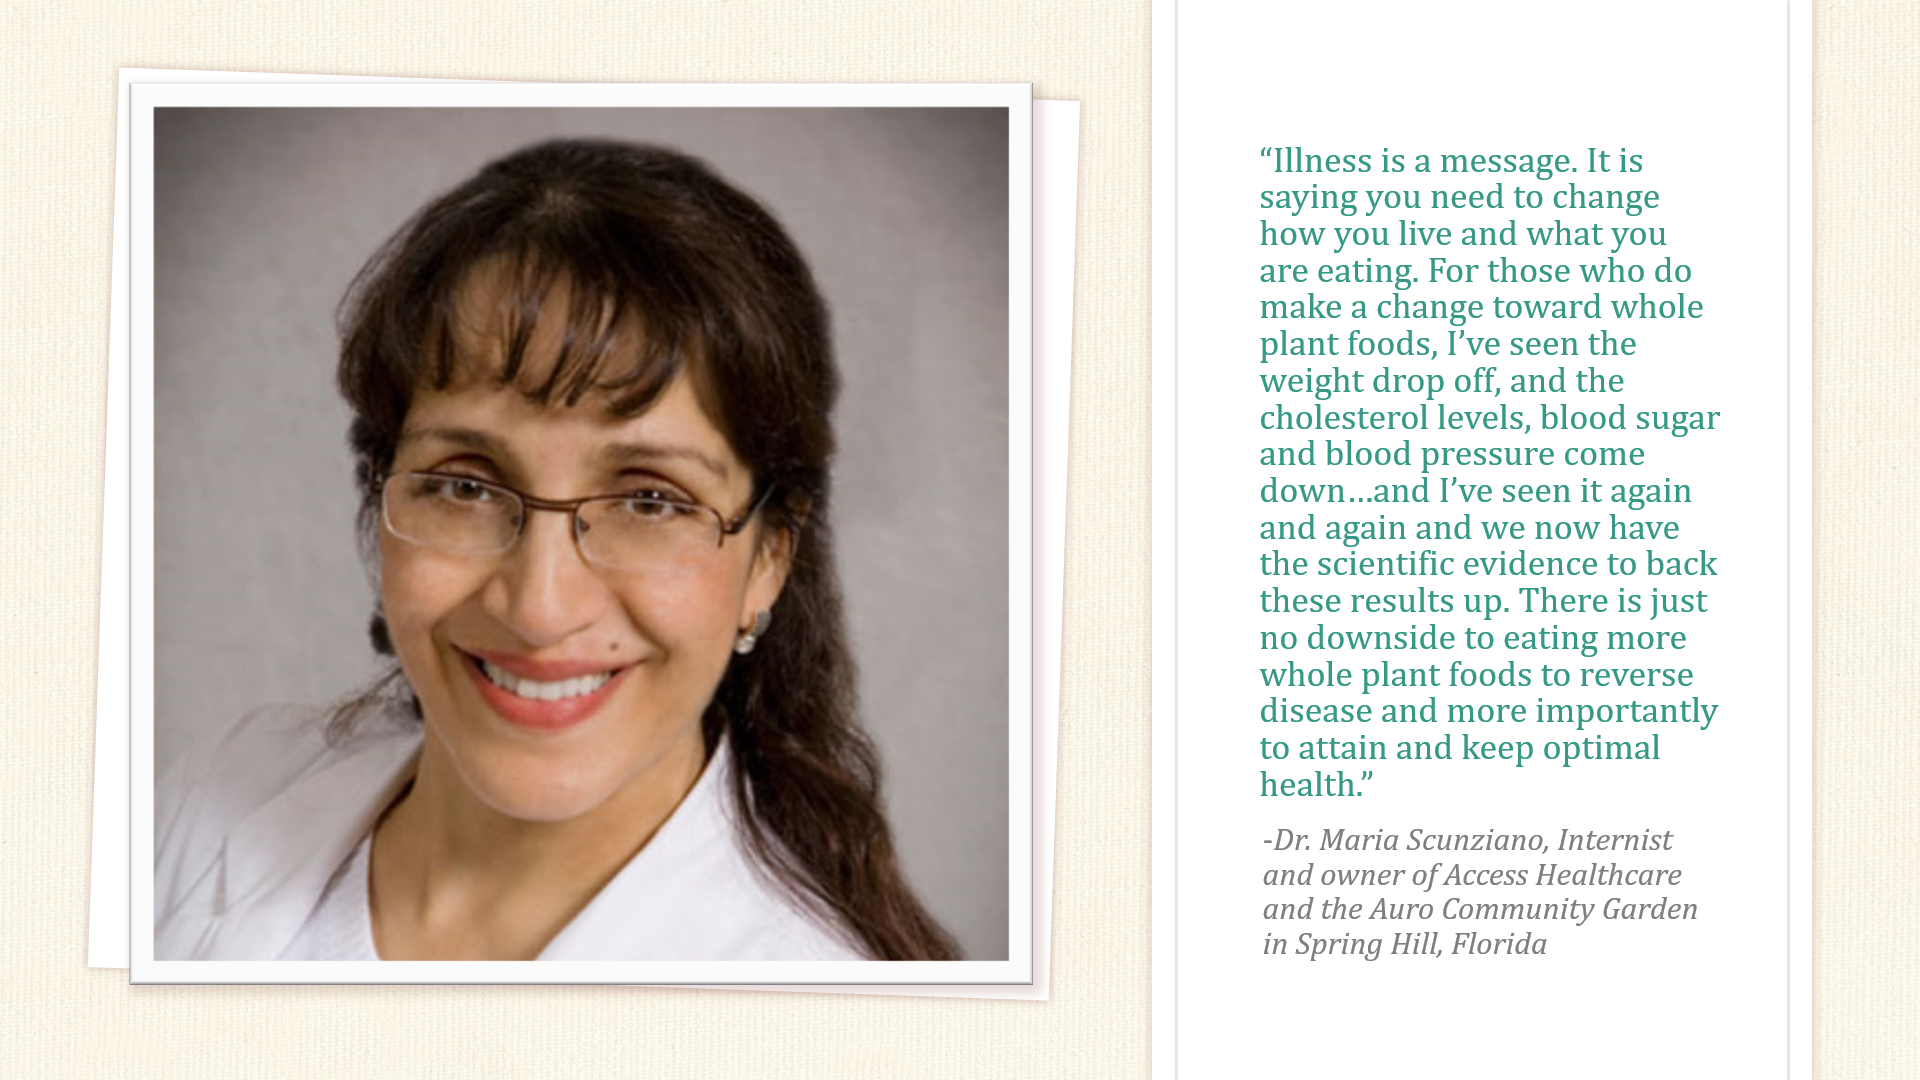 Dr. Maria Scunziano says...